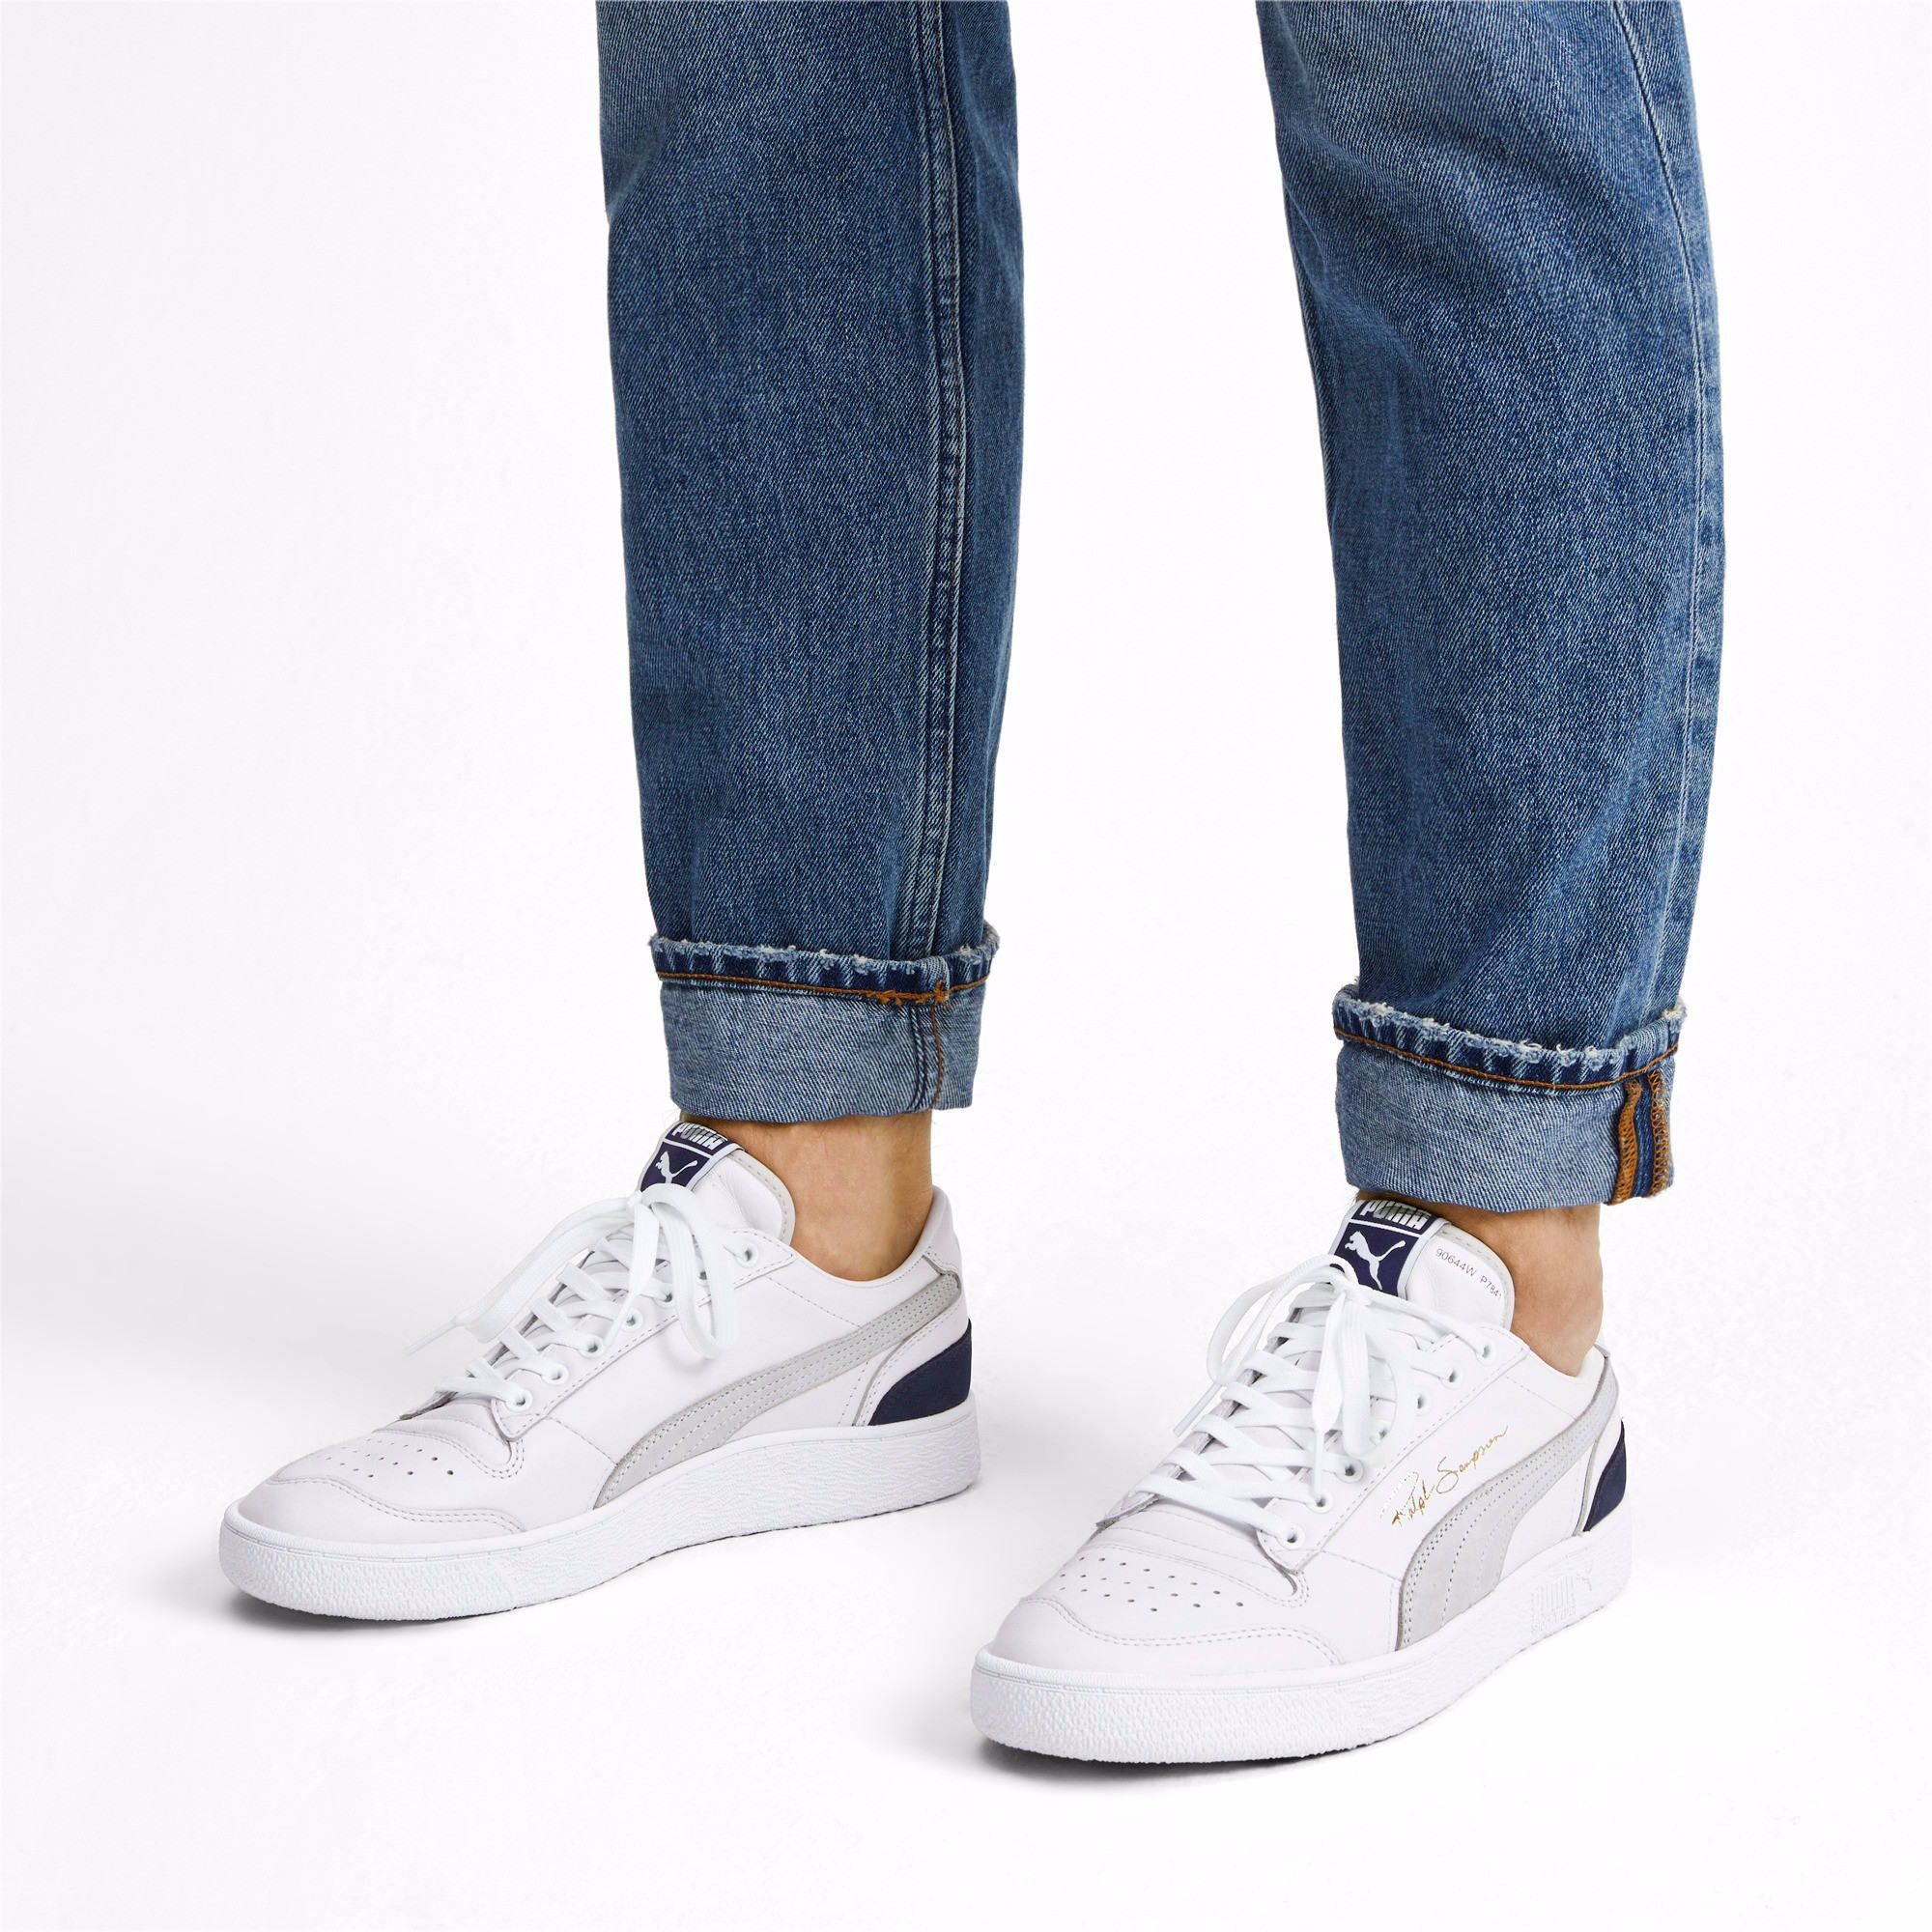 PUMA Ralph Sampson Low OG Trainers in